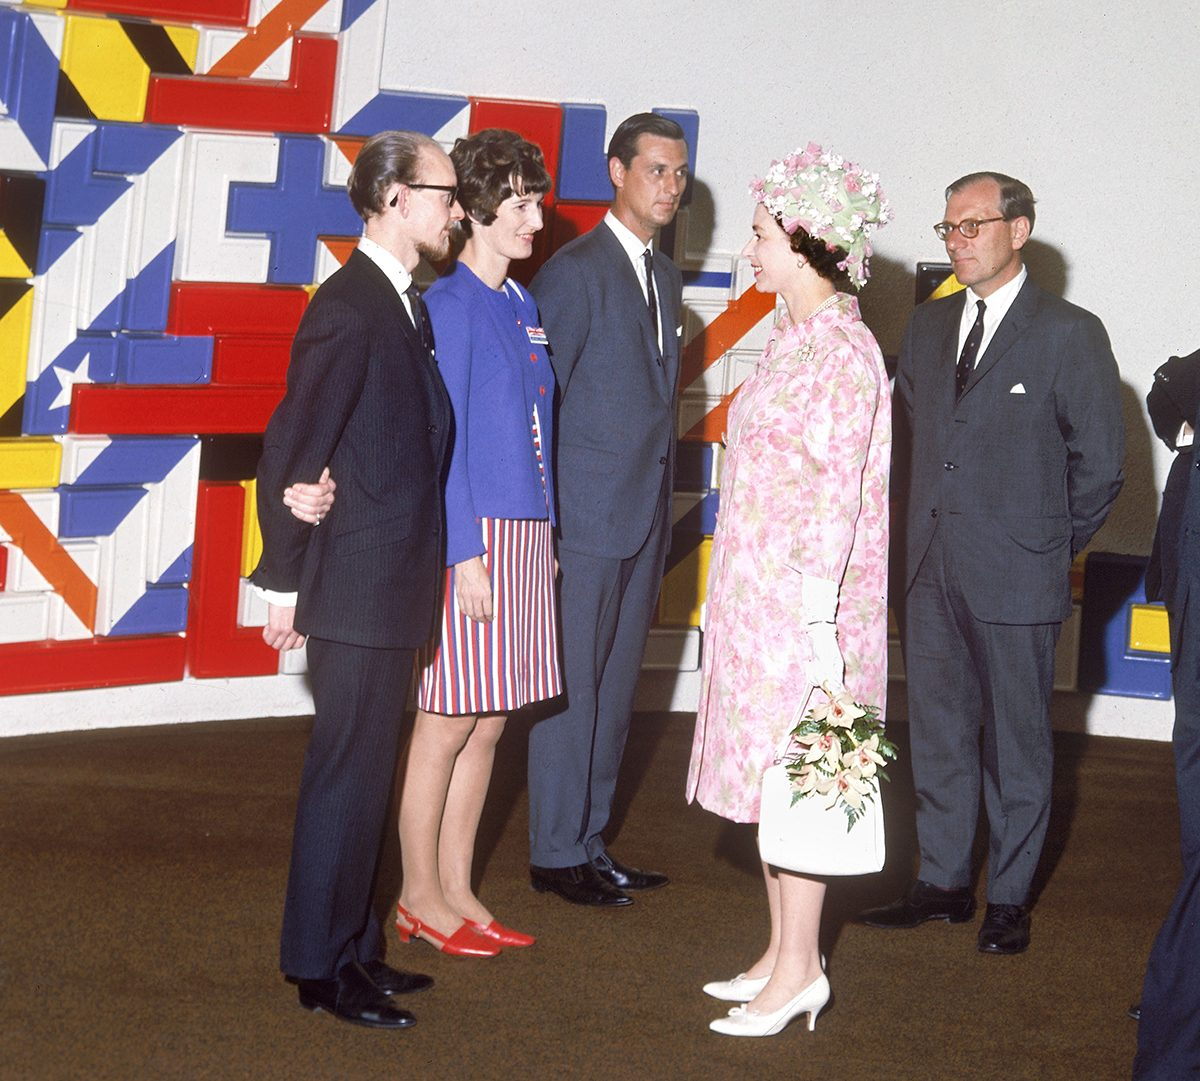 Royal tours of Canada - Queen Elizabeth II at Expo 67 in Montreal 1967